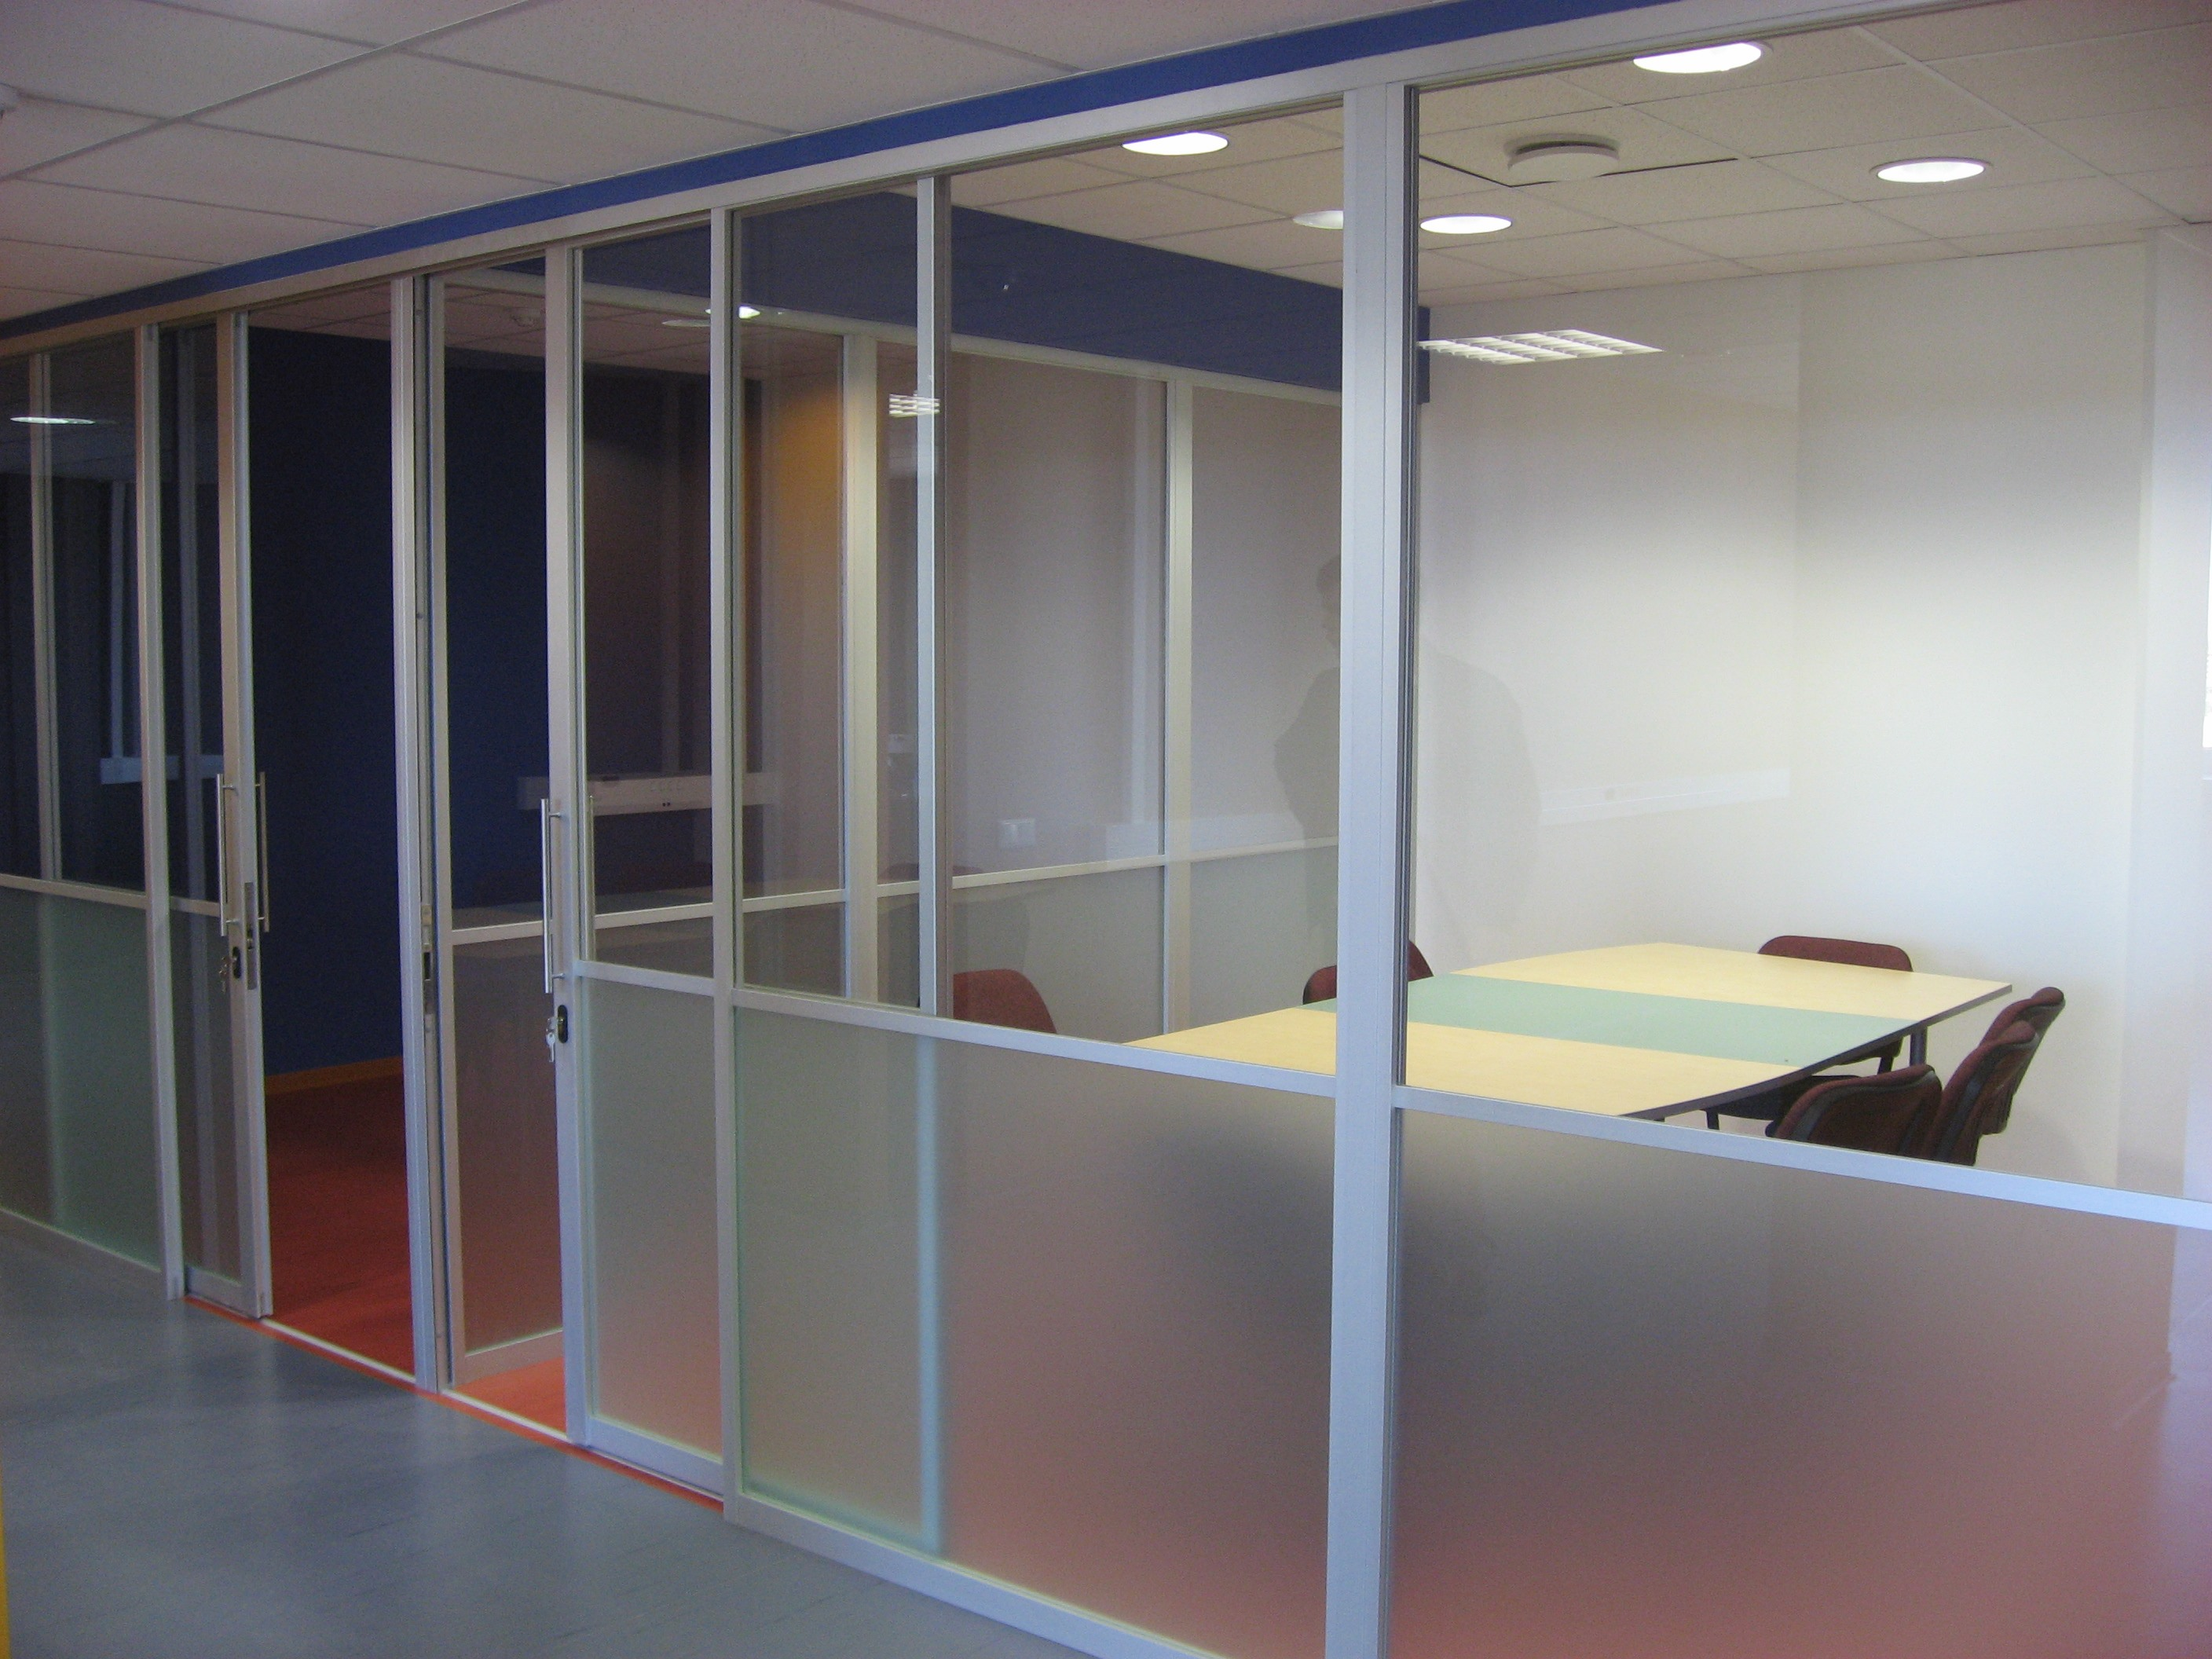 Aluminium Framed Glass Partiton Walls Malmerk